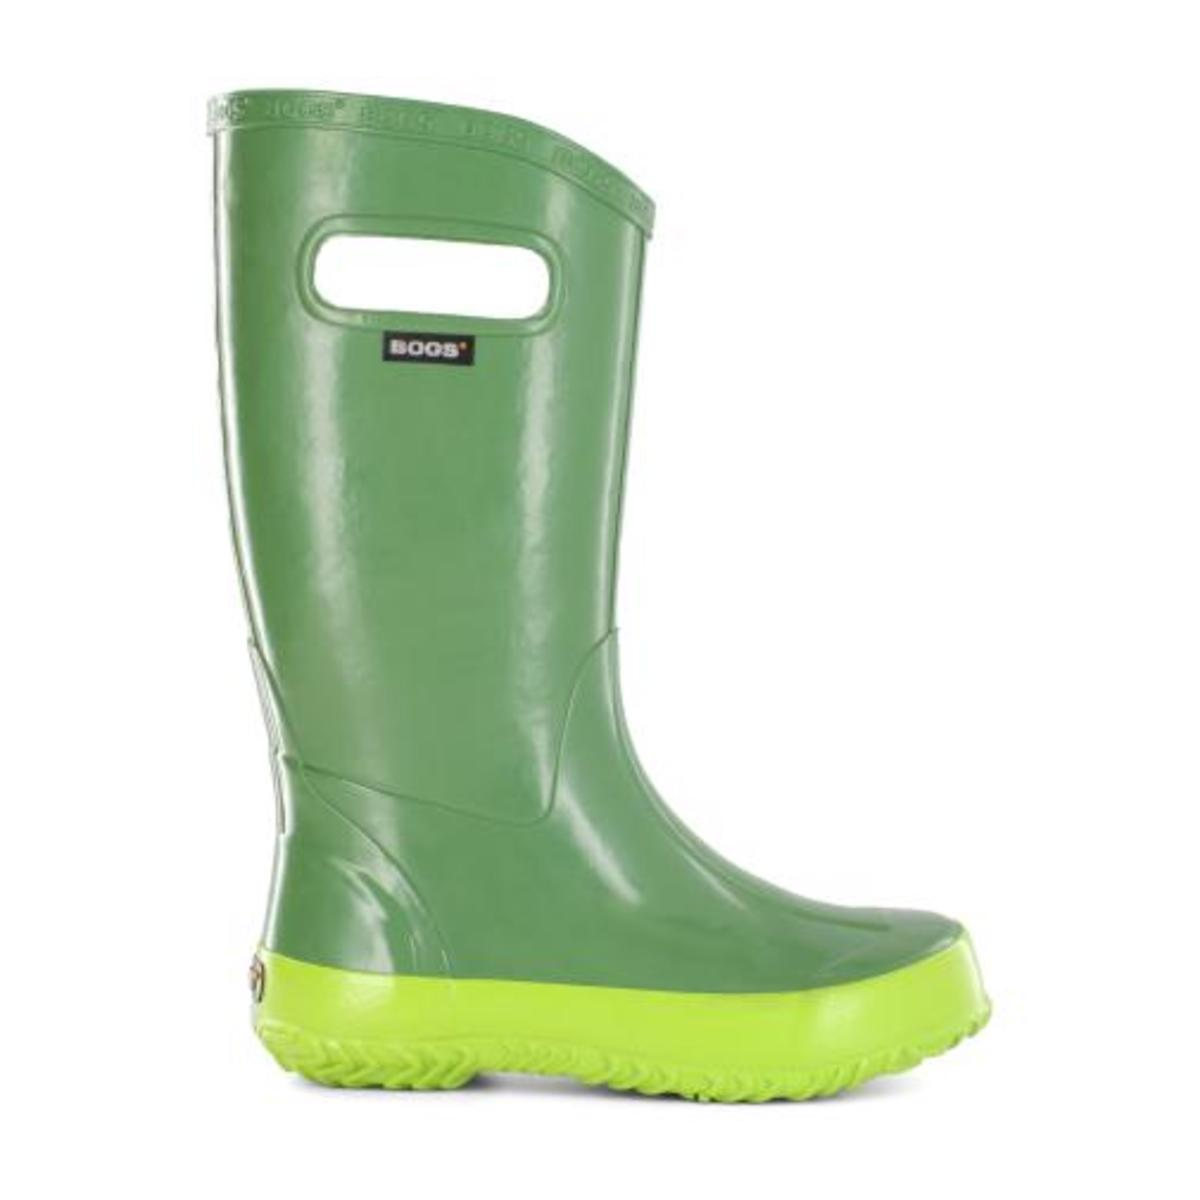 Rainboots for Back to School